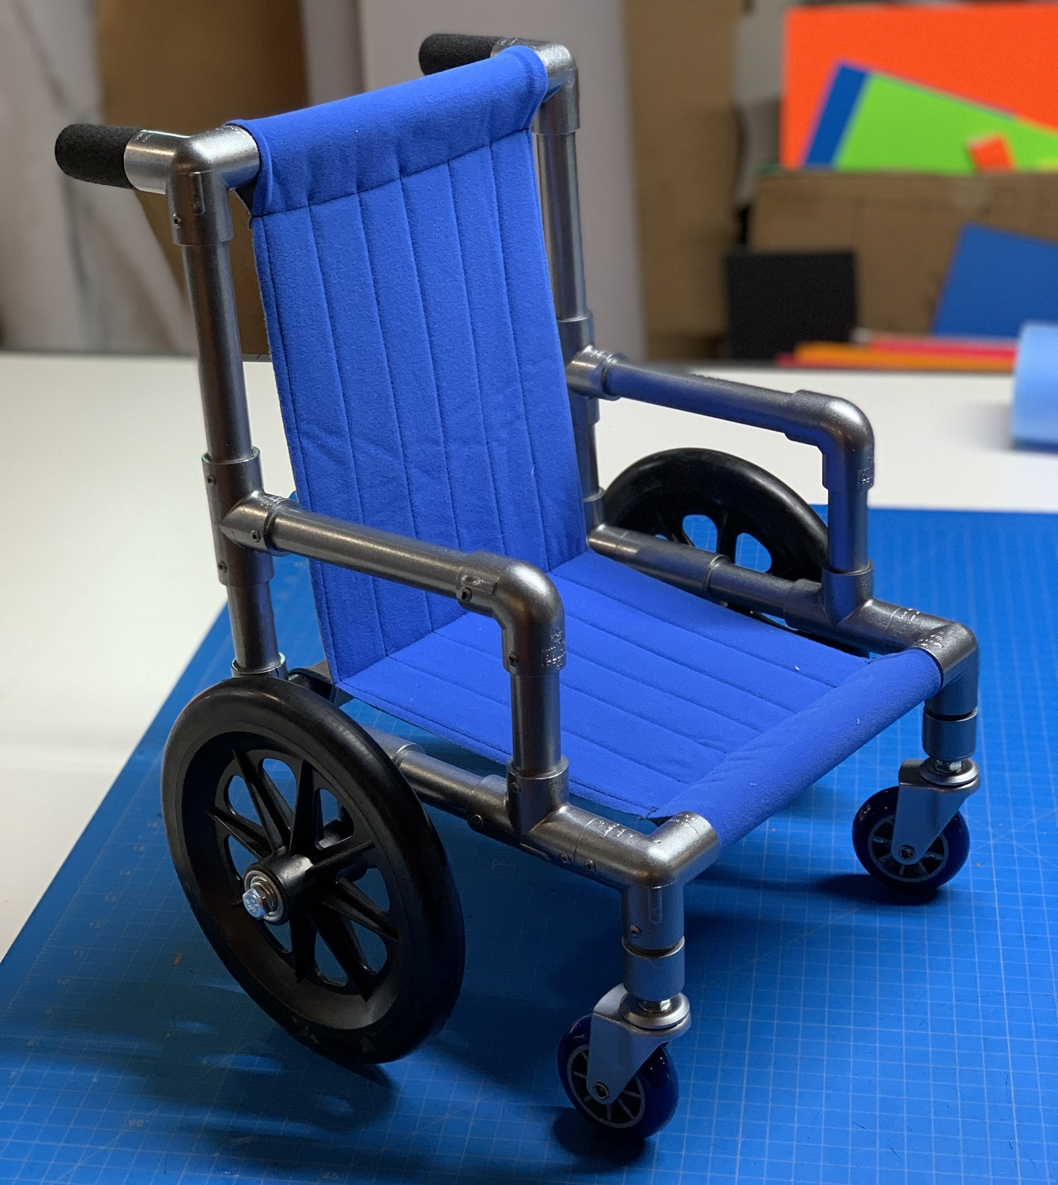 Puppet Wheelchair by Kristofer Sommerfeld